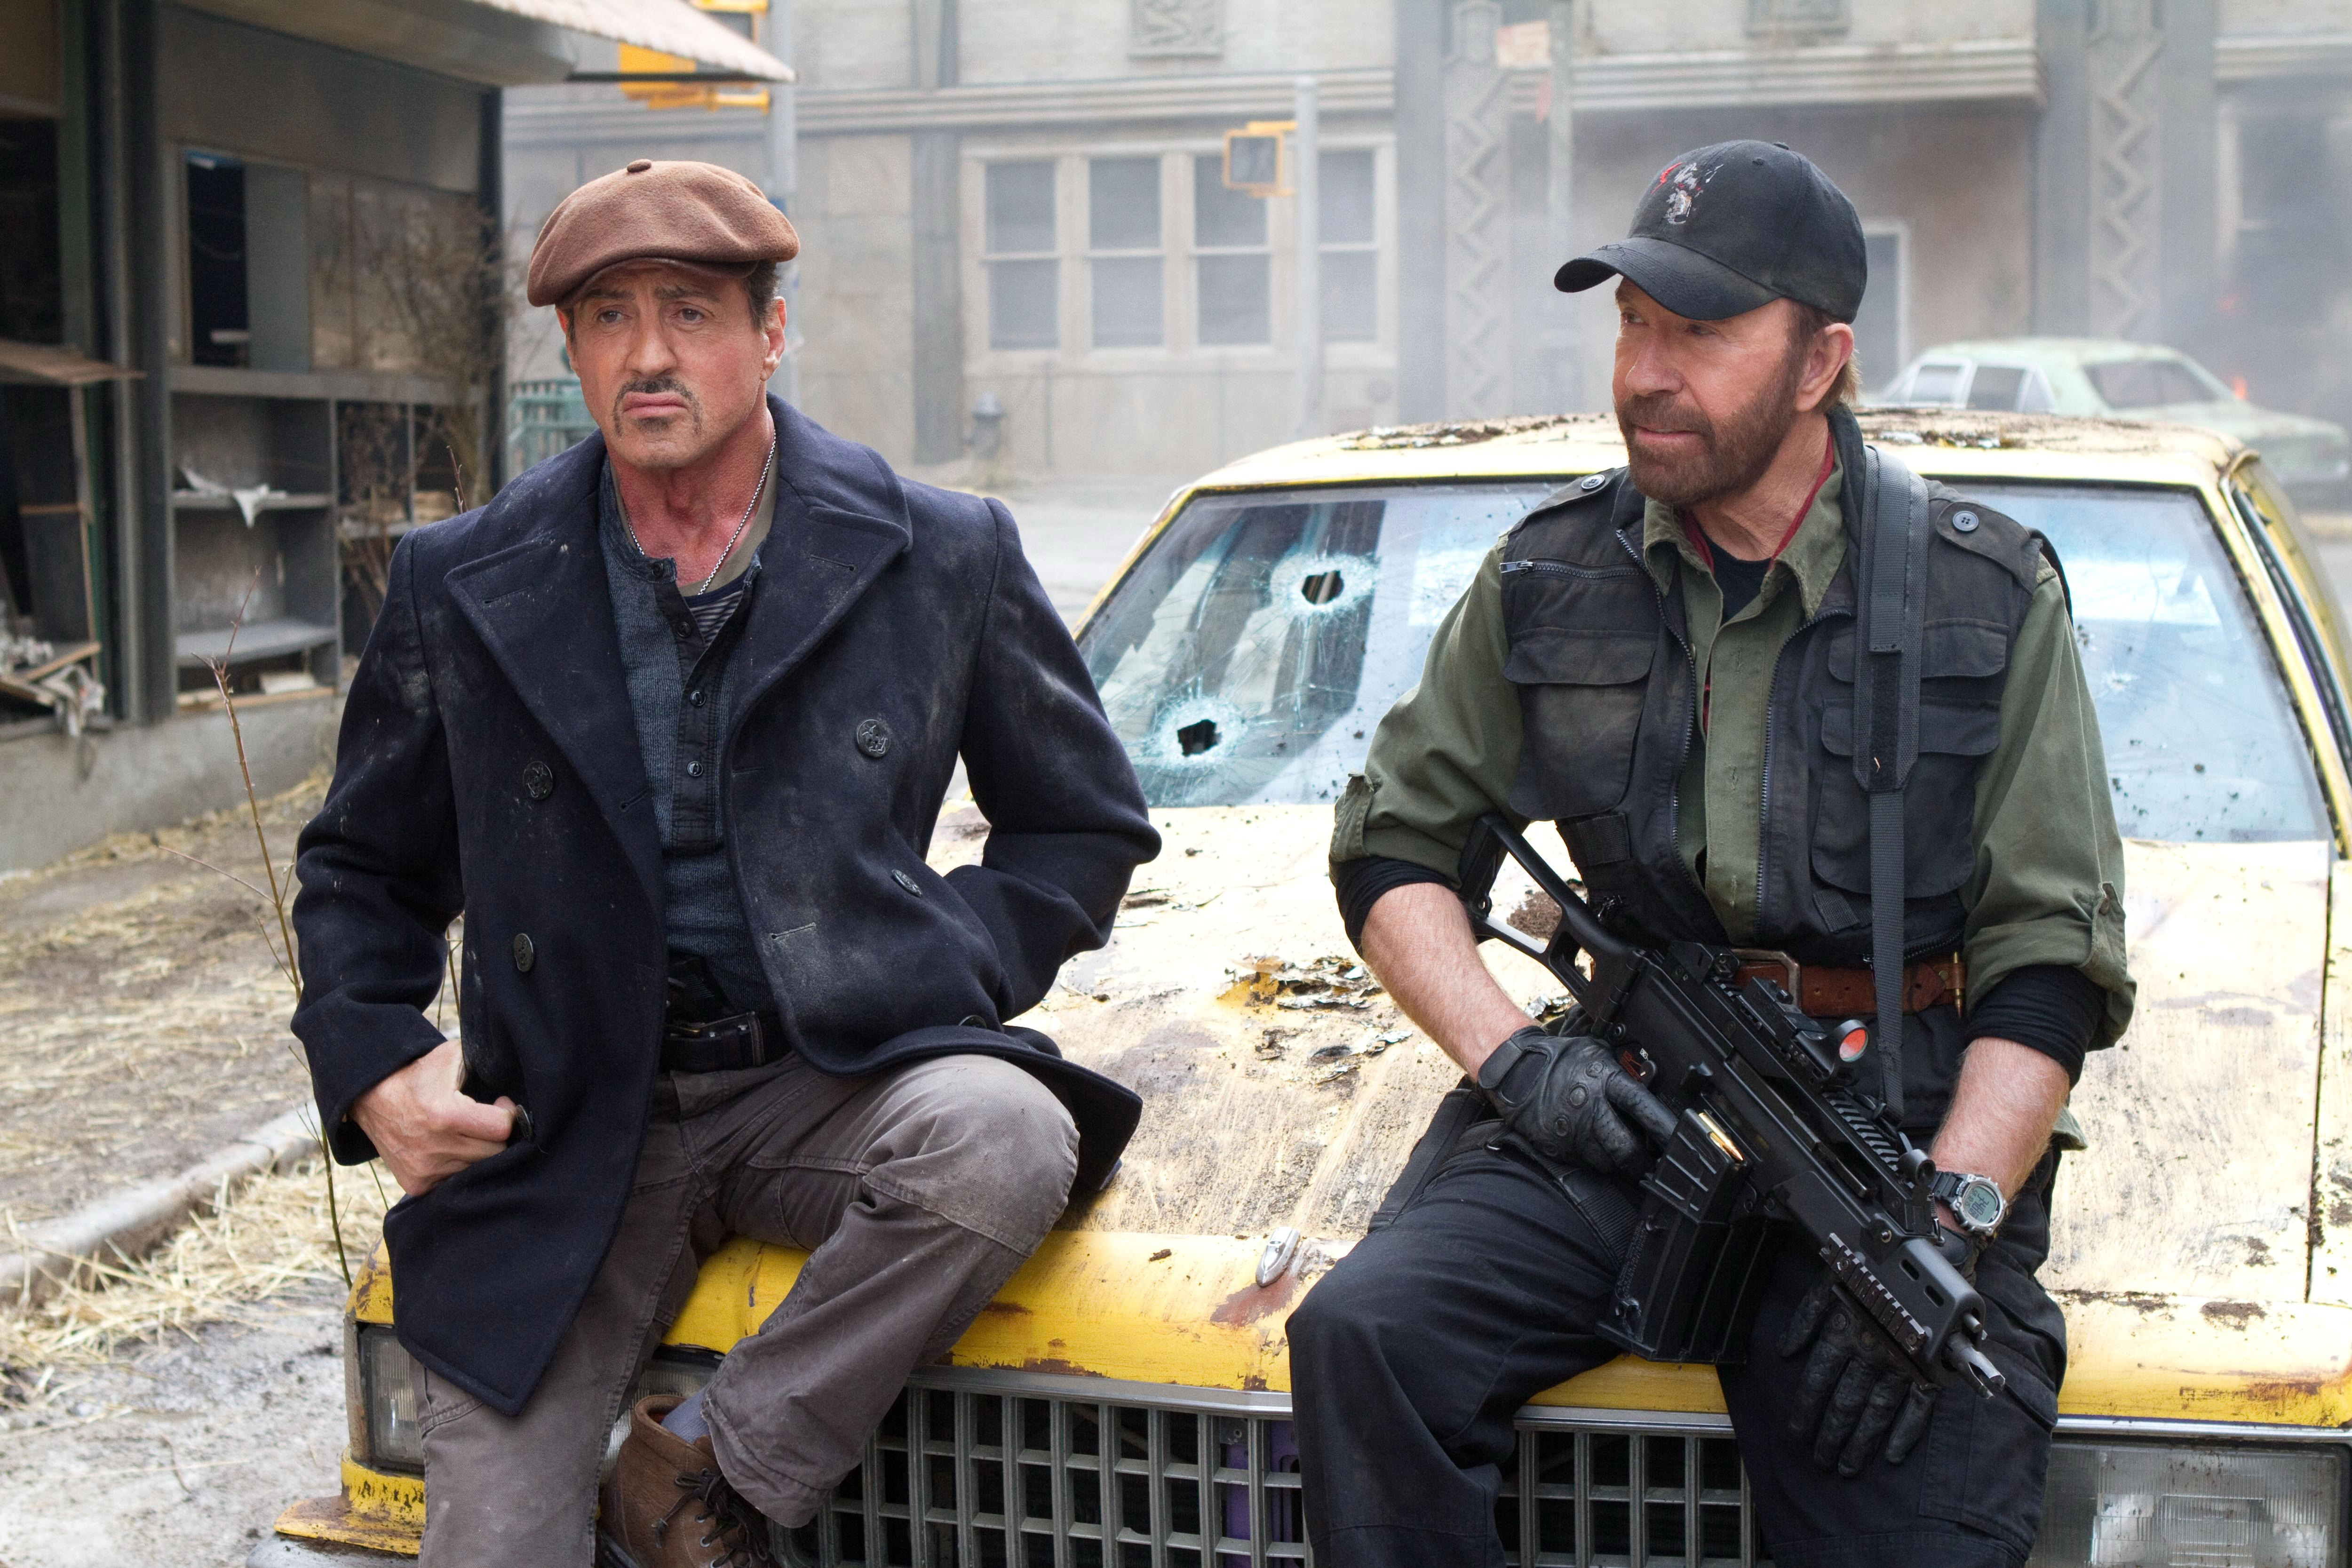 Picture The Expendables 2010 Chuck Norris Sylvester Stallone film 5000x3333 Movies